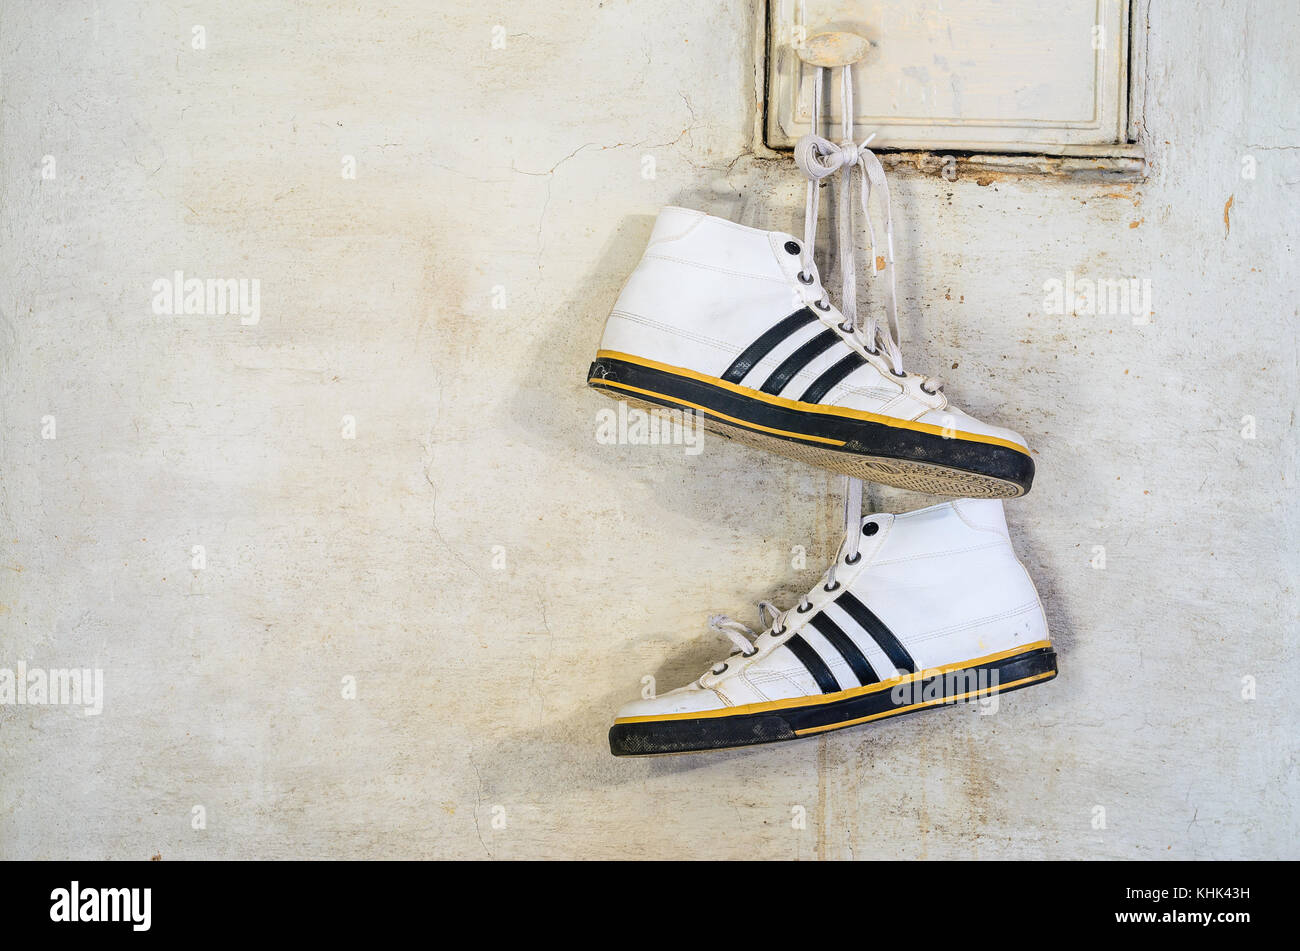 57818bad9fb79d Adidas Sneakers Stock Photos   Adidas Sneakers Stock Images - Alamy